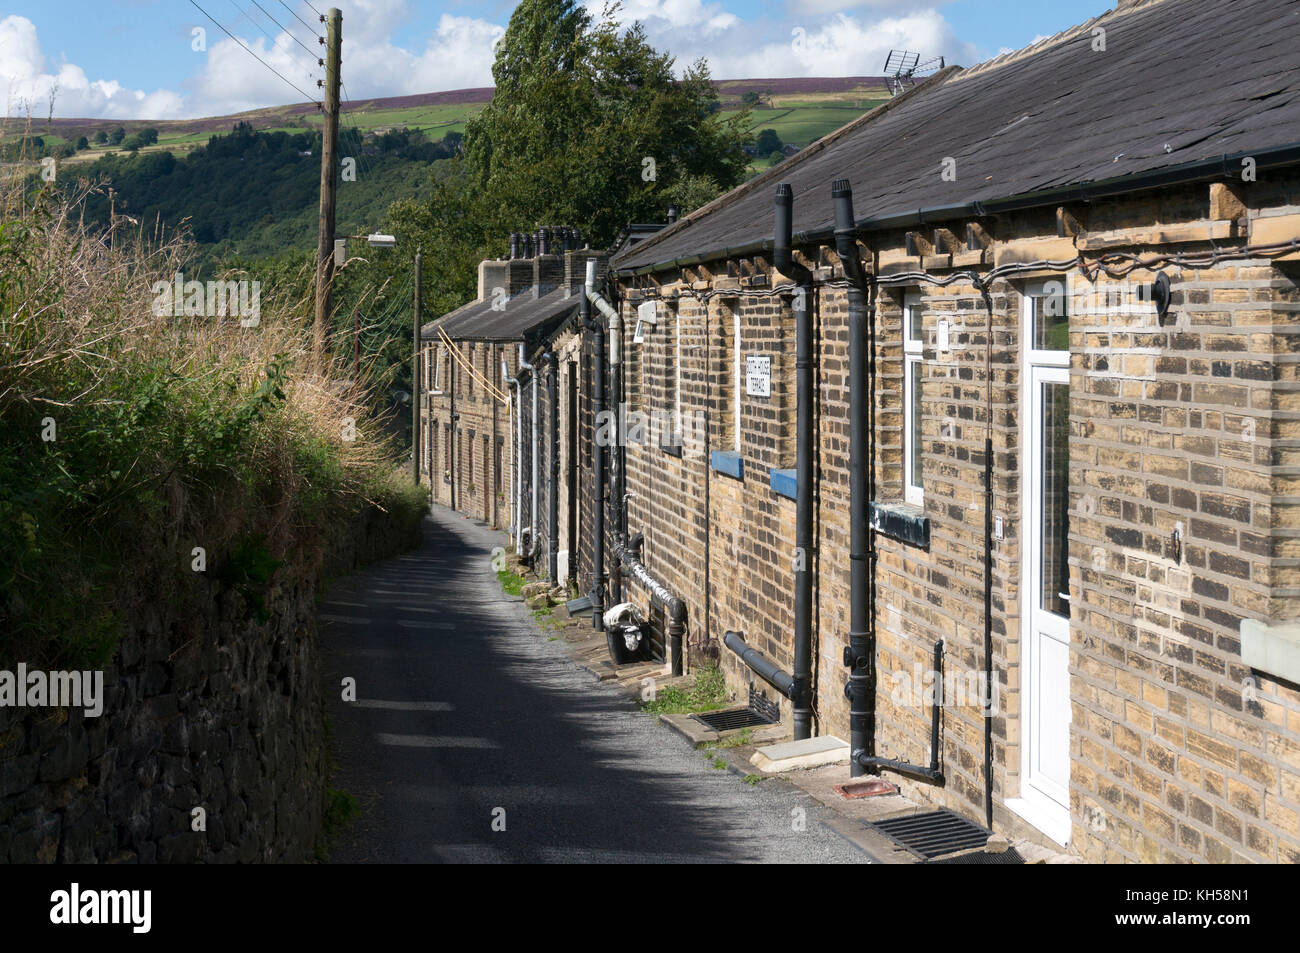 Row of old stone cottages on narrow road, Luddenden Foot, West Yorkshire - Stock Image